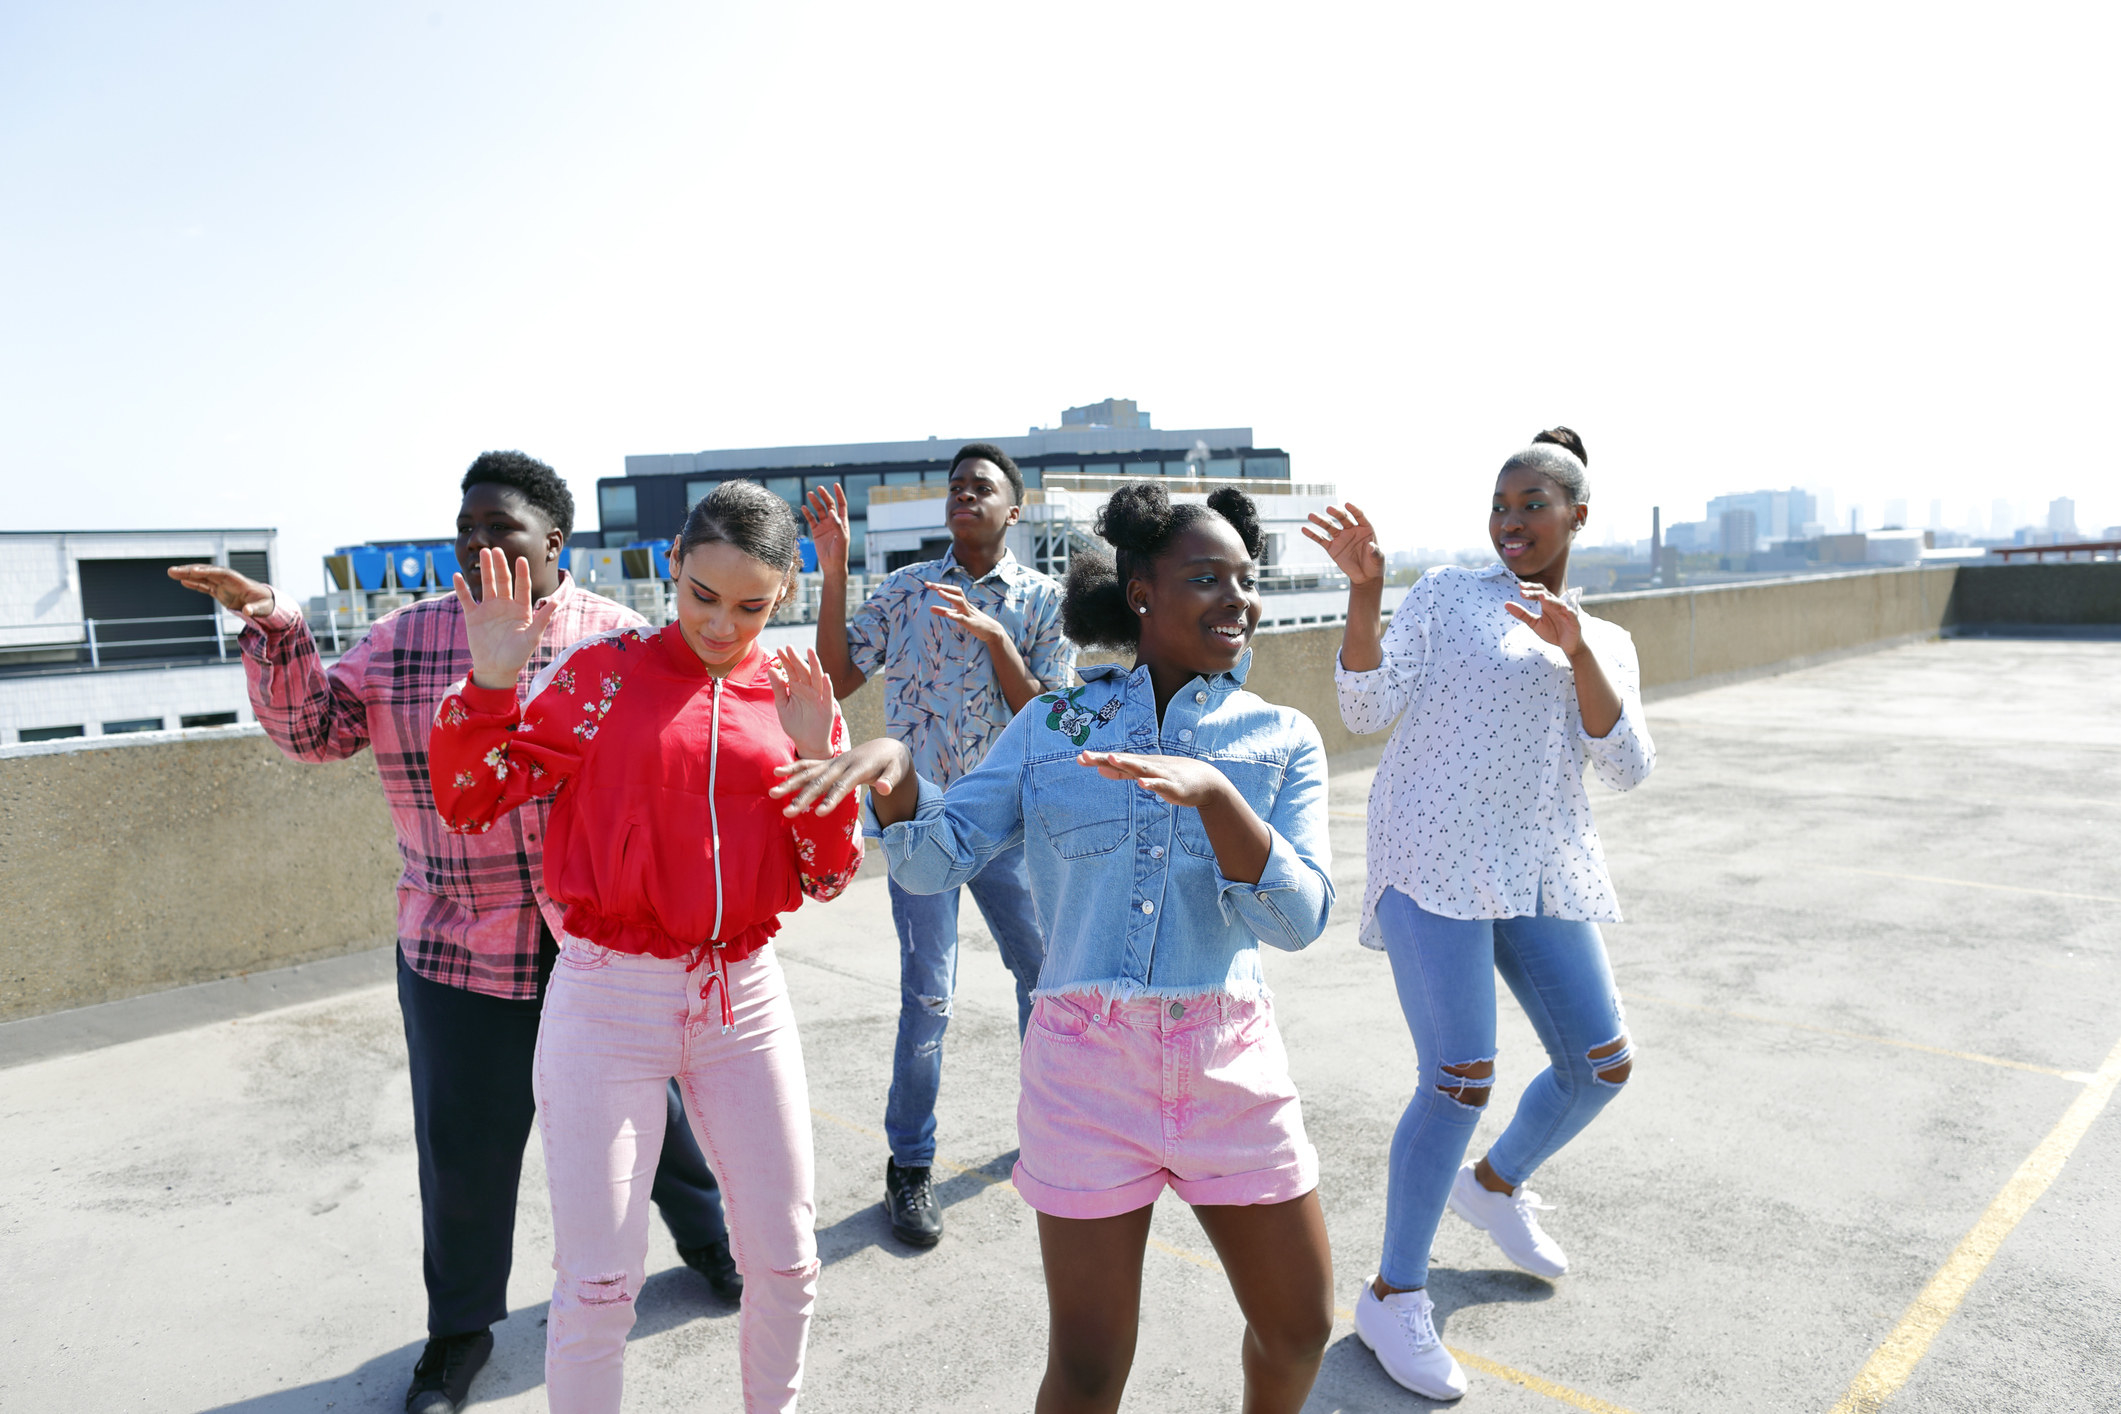 Young people dancing in a parking garage